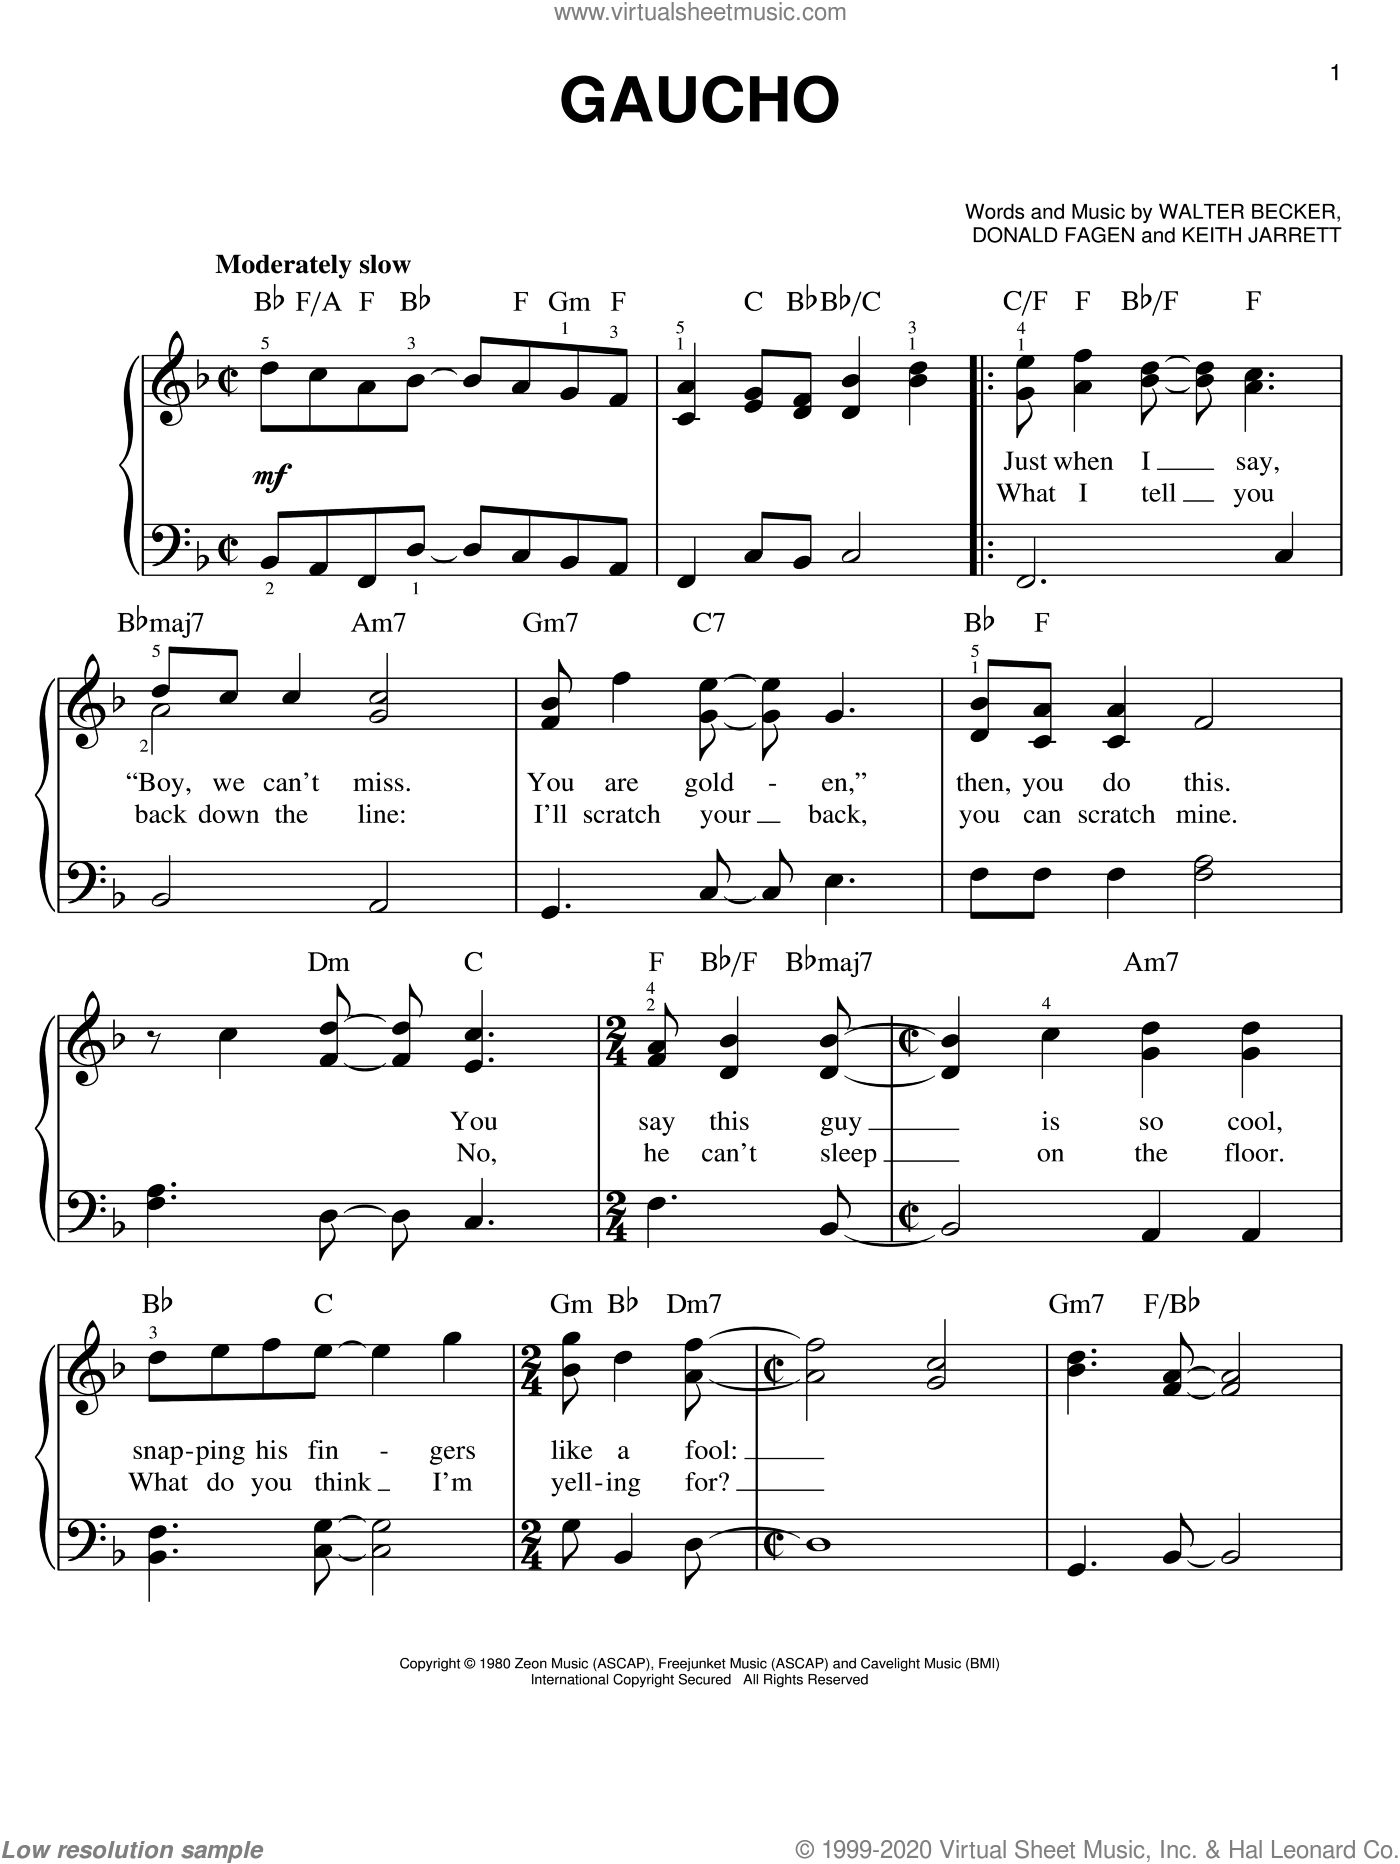 Gaucho sheet music for piano solo by Steely Dan, Donald Fagen, Keith Jarrett and Walter Becker, easy skill level